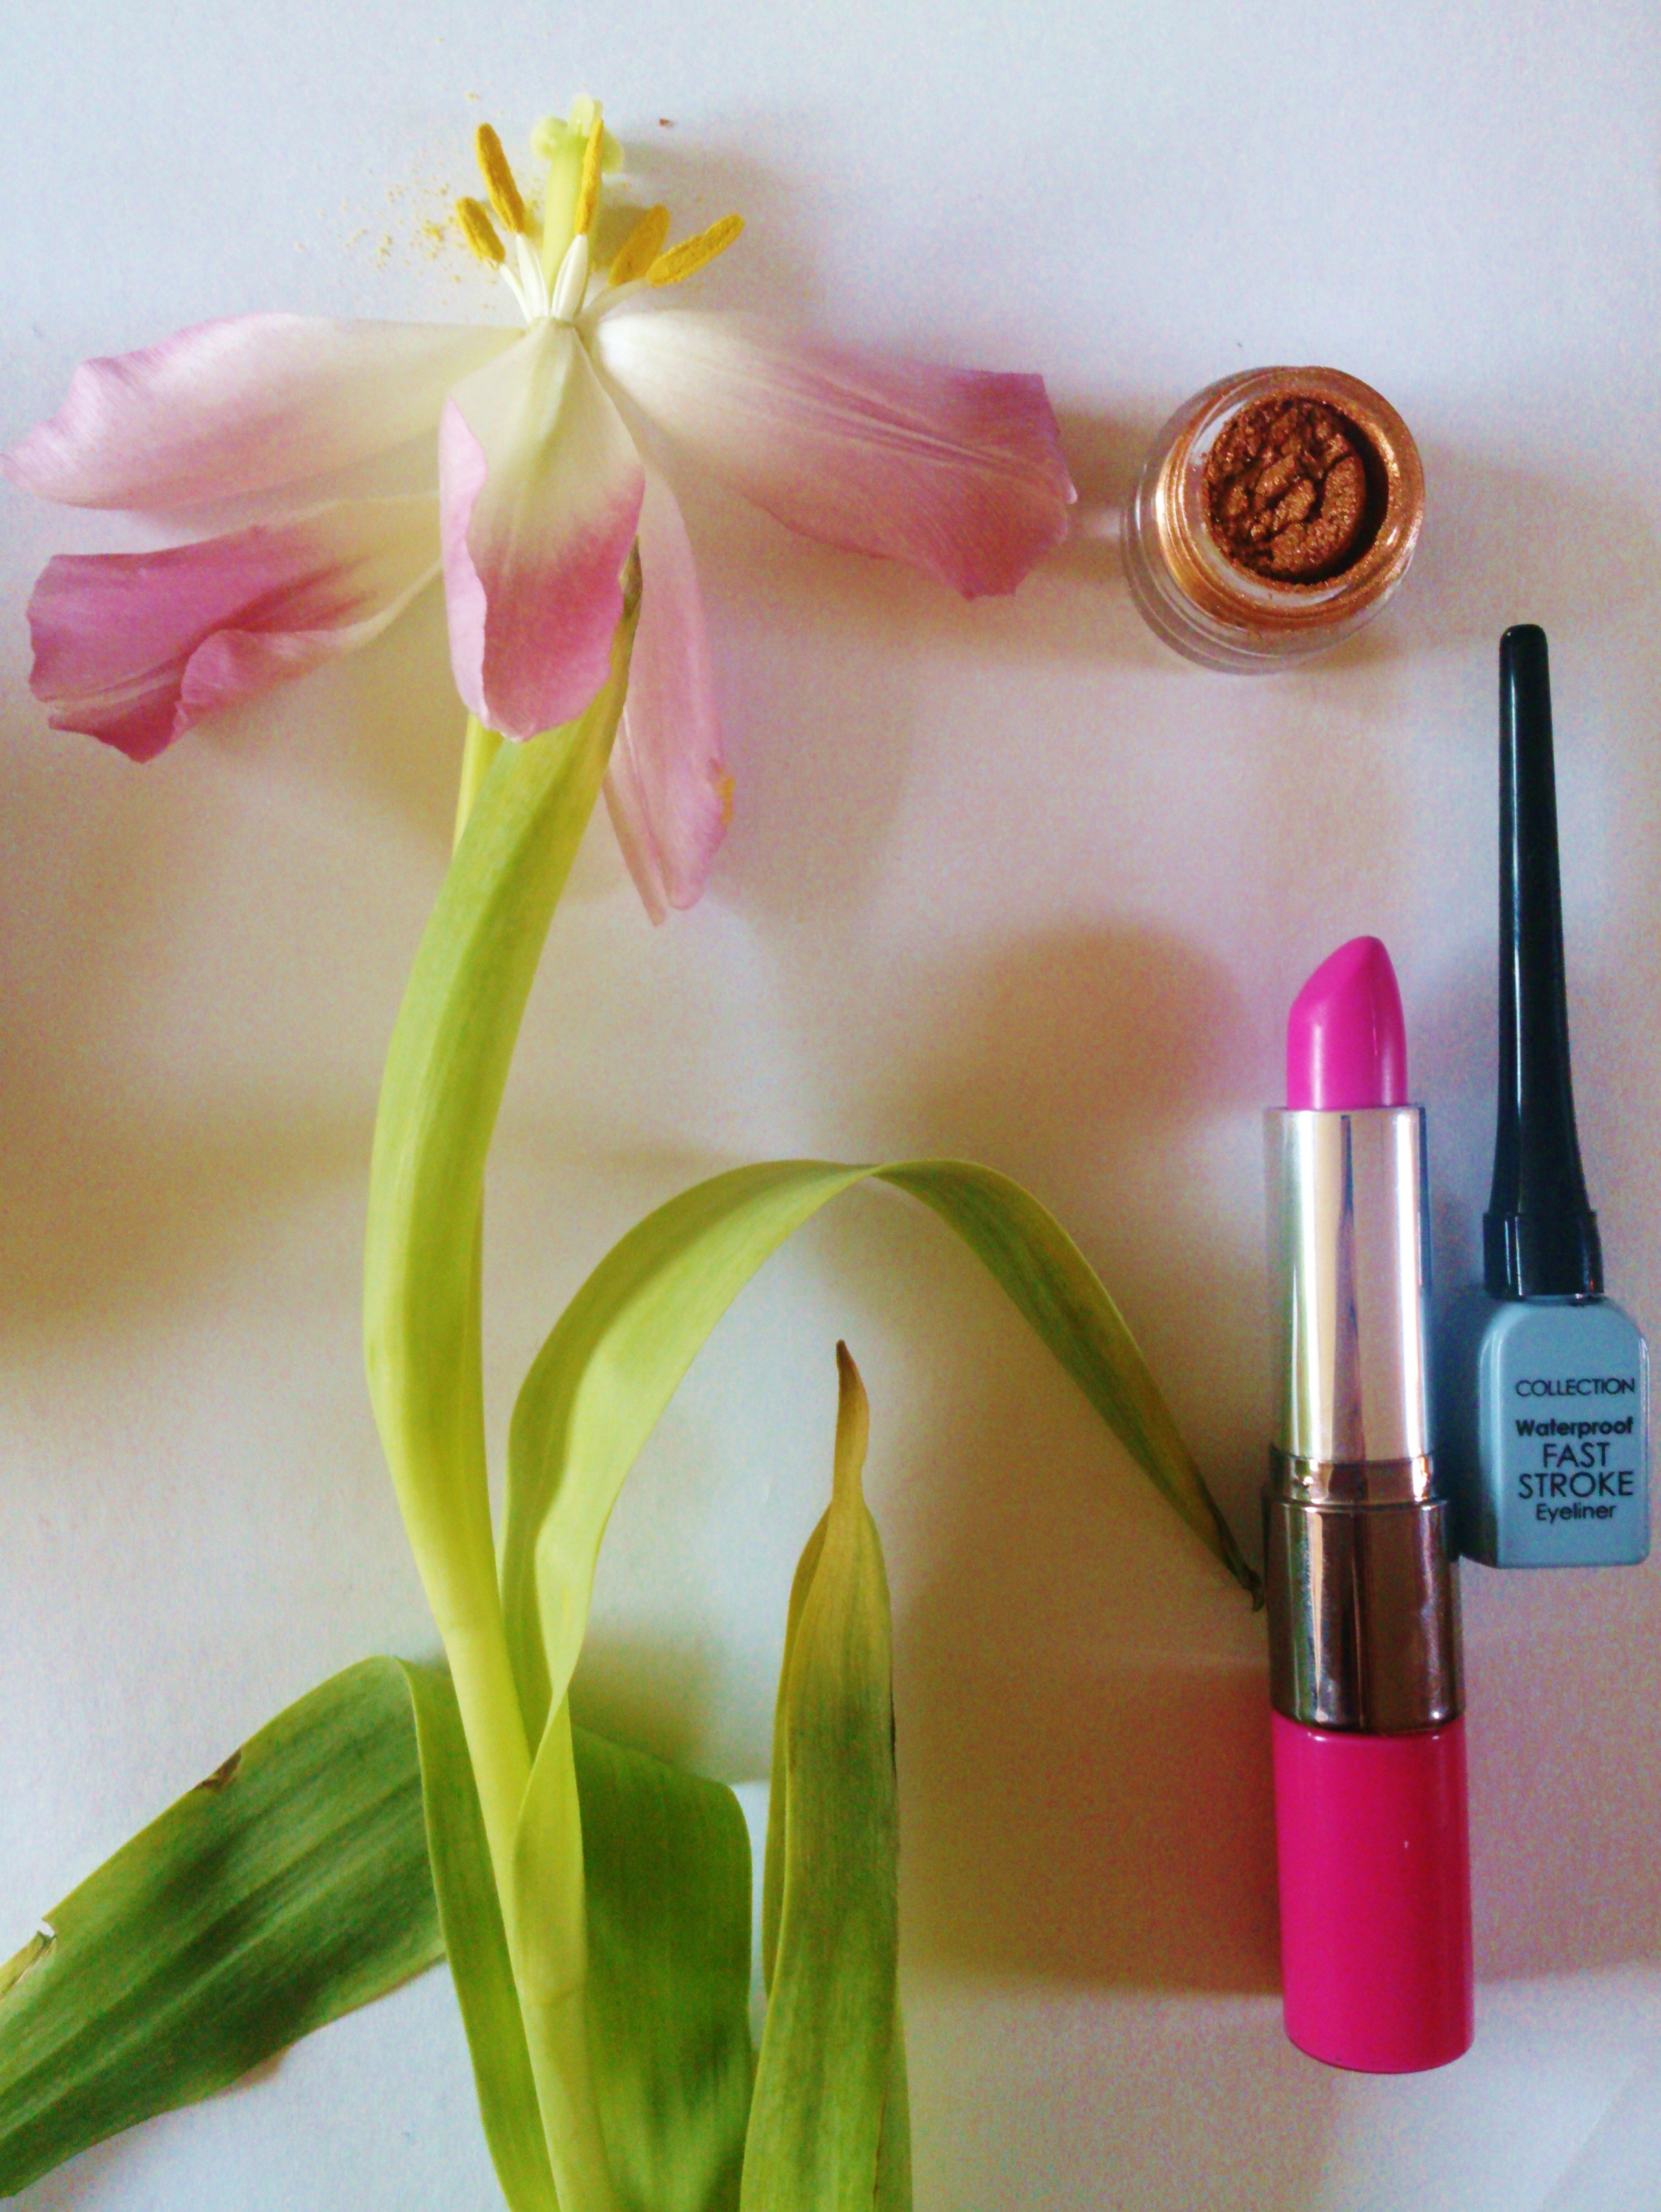 The pots of loose mineral eye shadows reminded me of pollen, used as a very early natural pigment. I had been drawn to this lipstick for it's soft petal pink colour, ready for Spring!